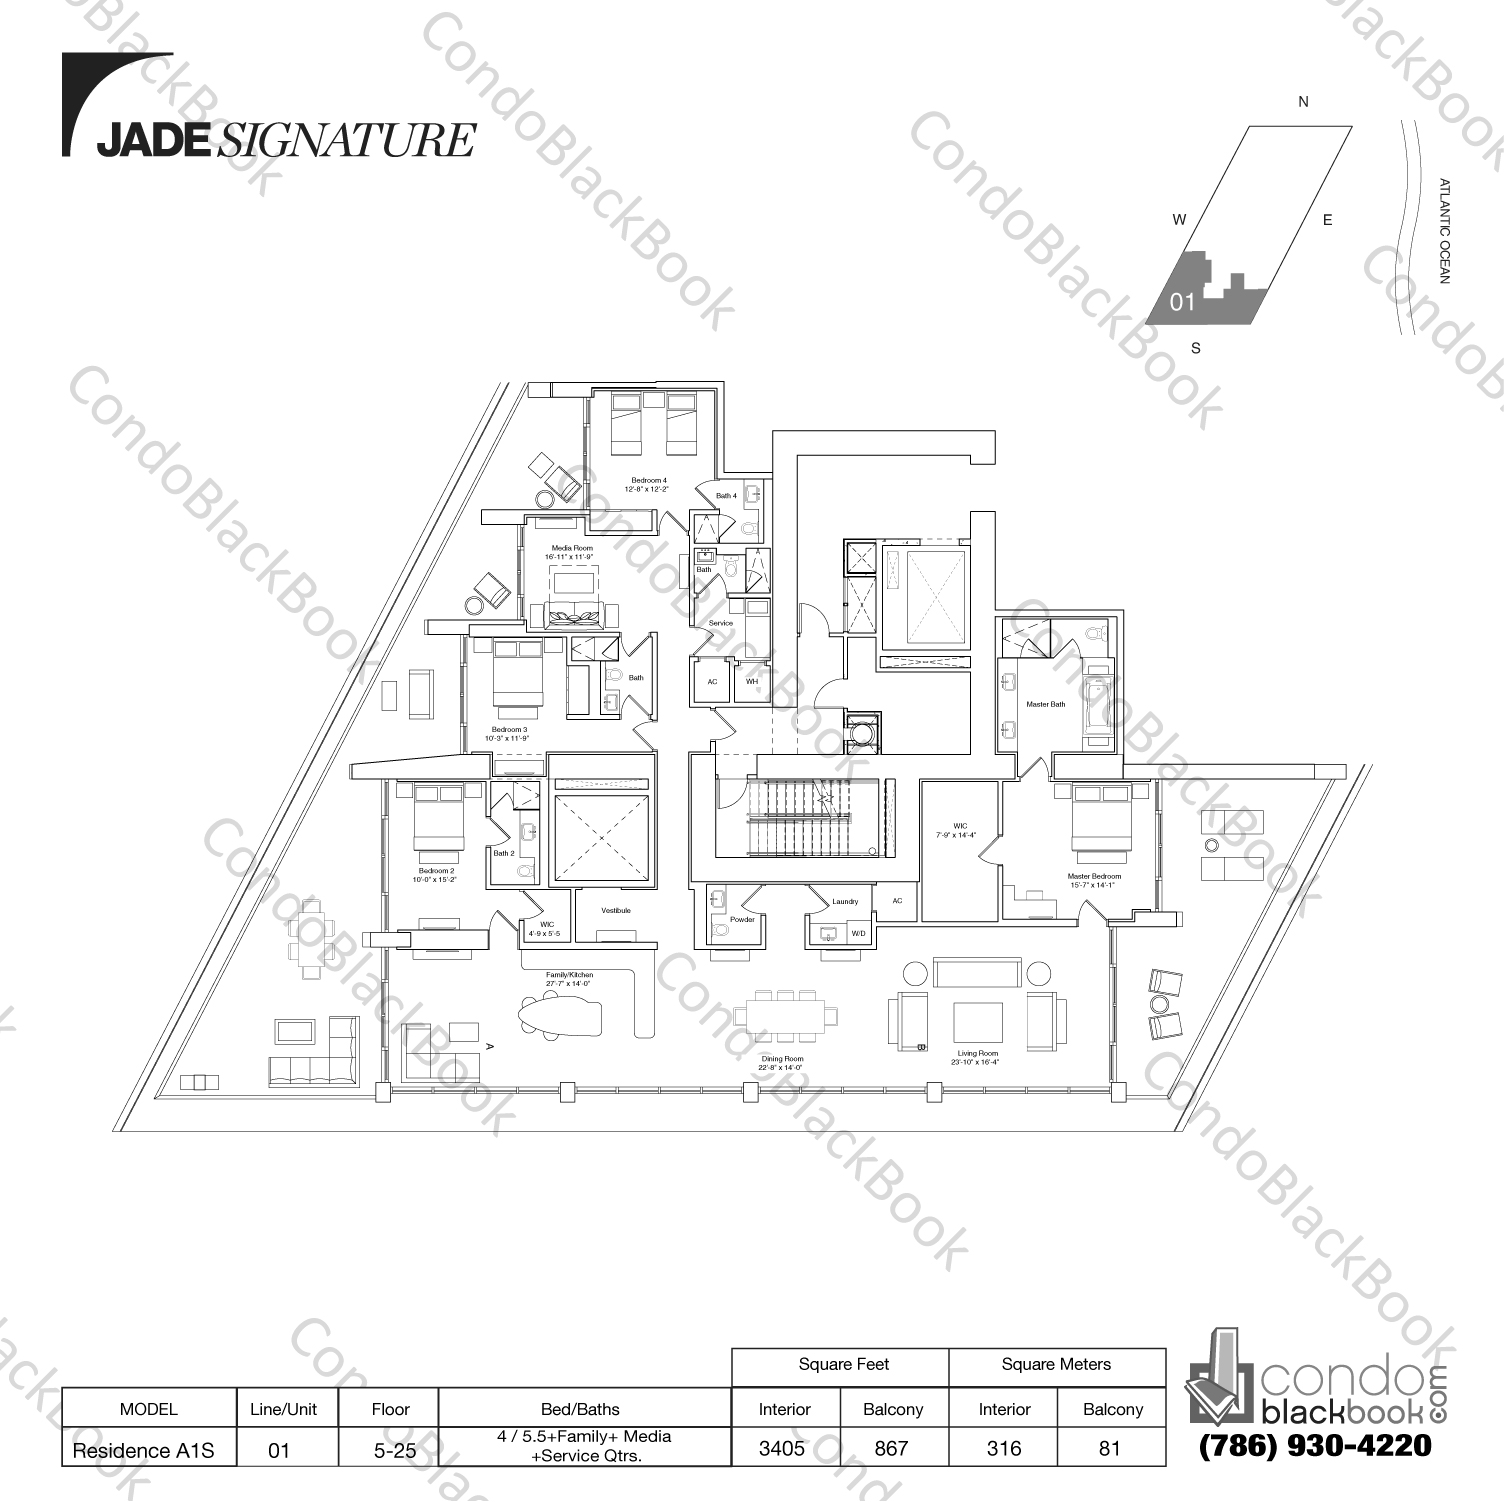 Floor plan for Jade Signature Sunny Isles Beach, model Residence A1S, line 01, 4 / 5.5+Family+Media+Service Qtrs. bedrooms, 3405 sq ft